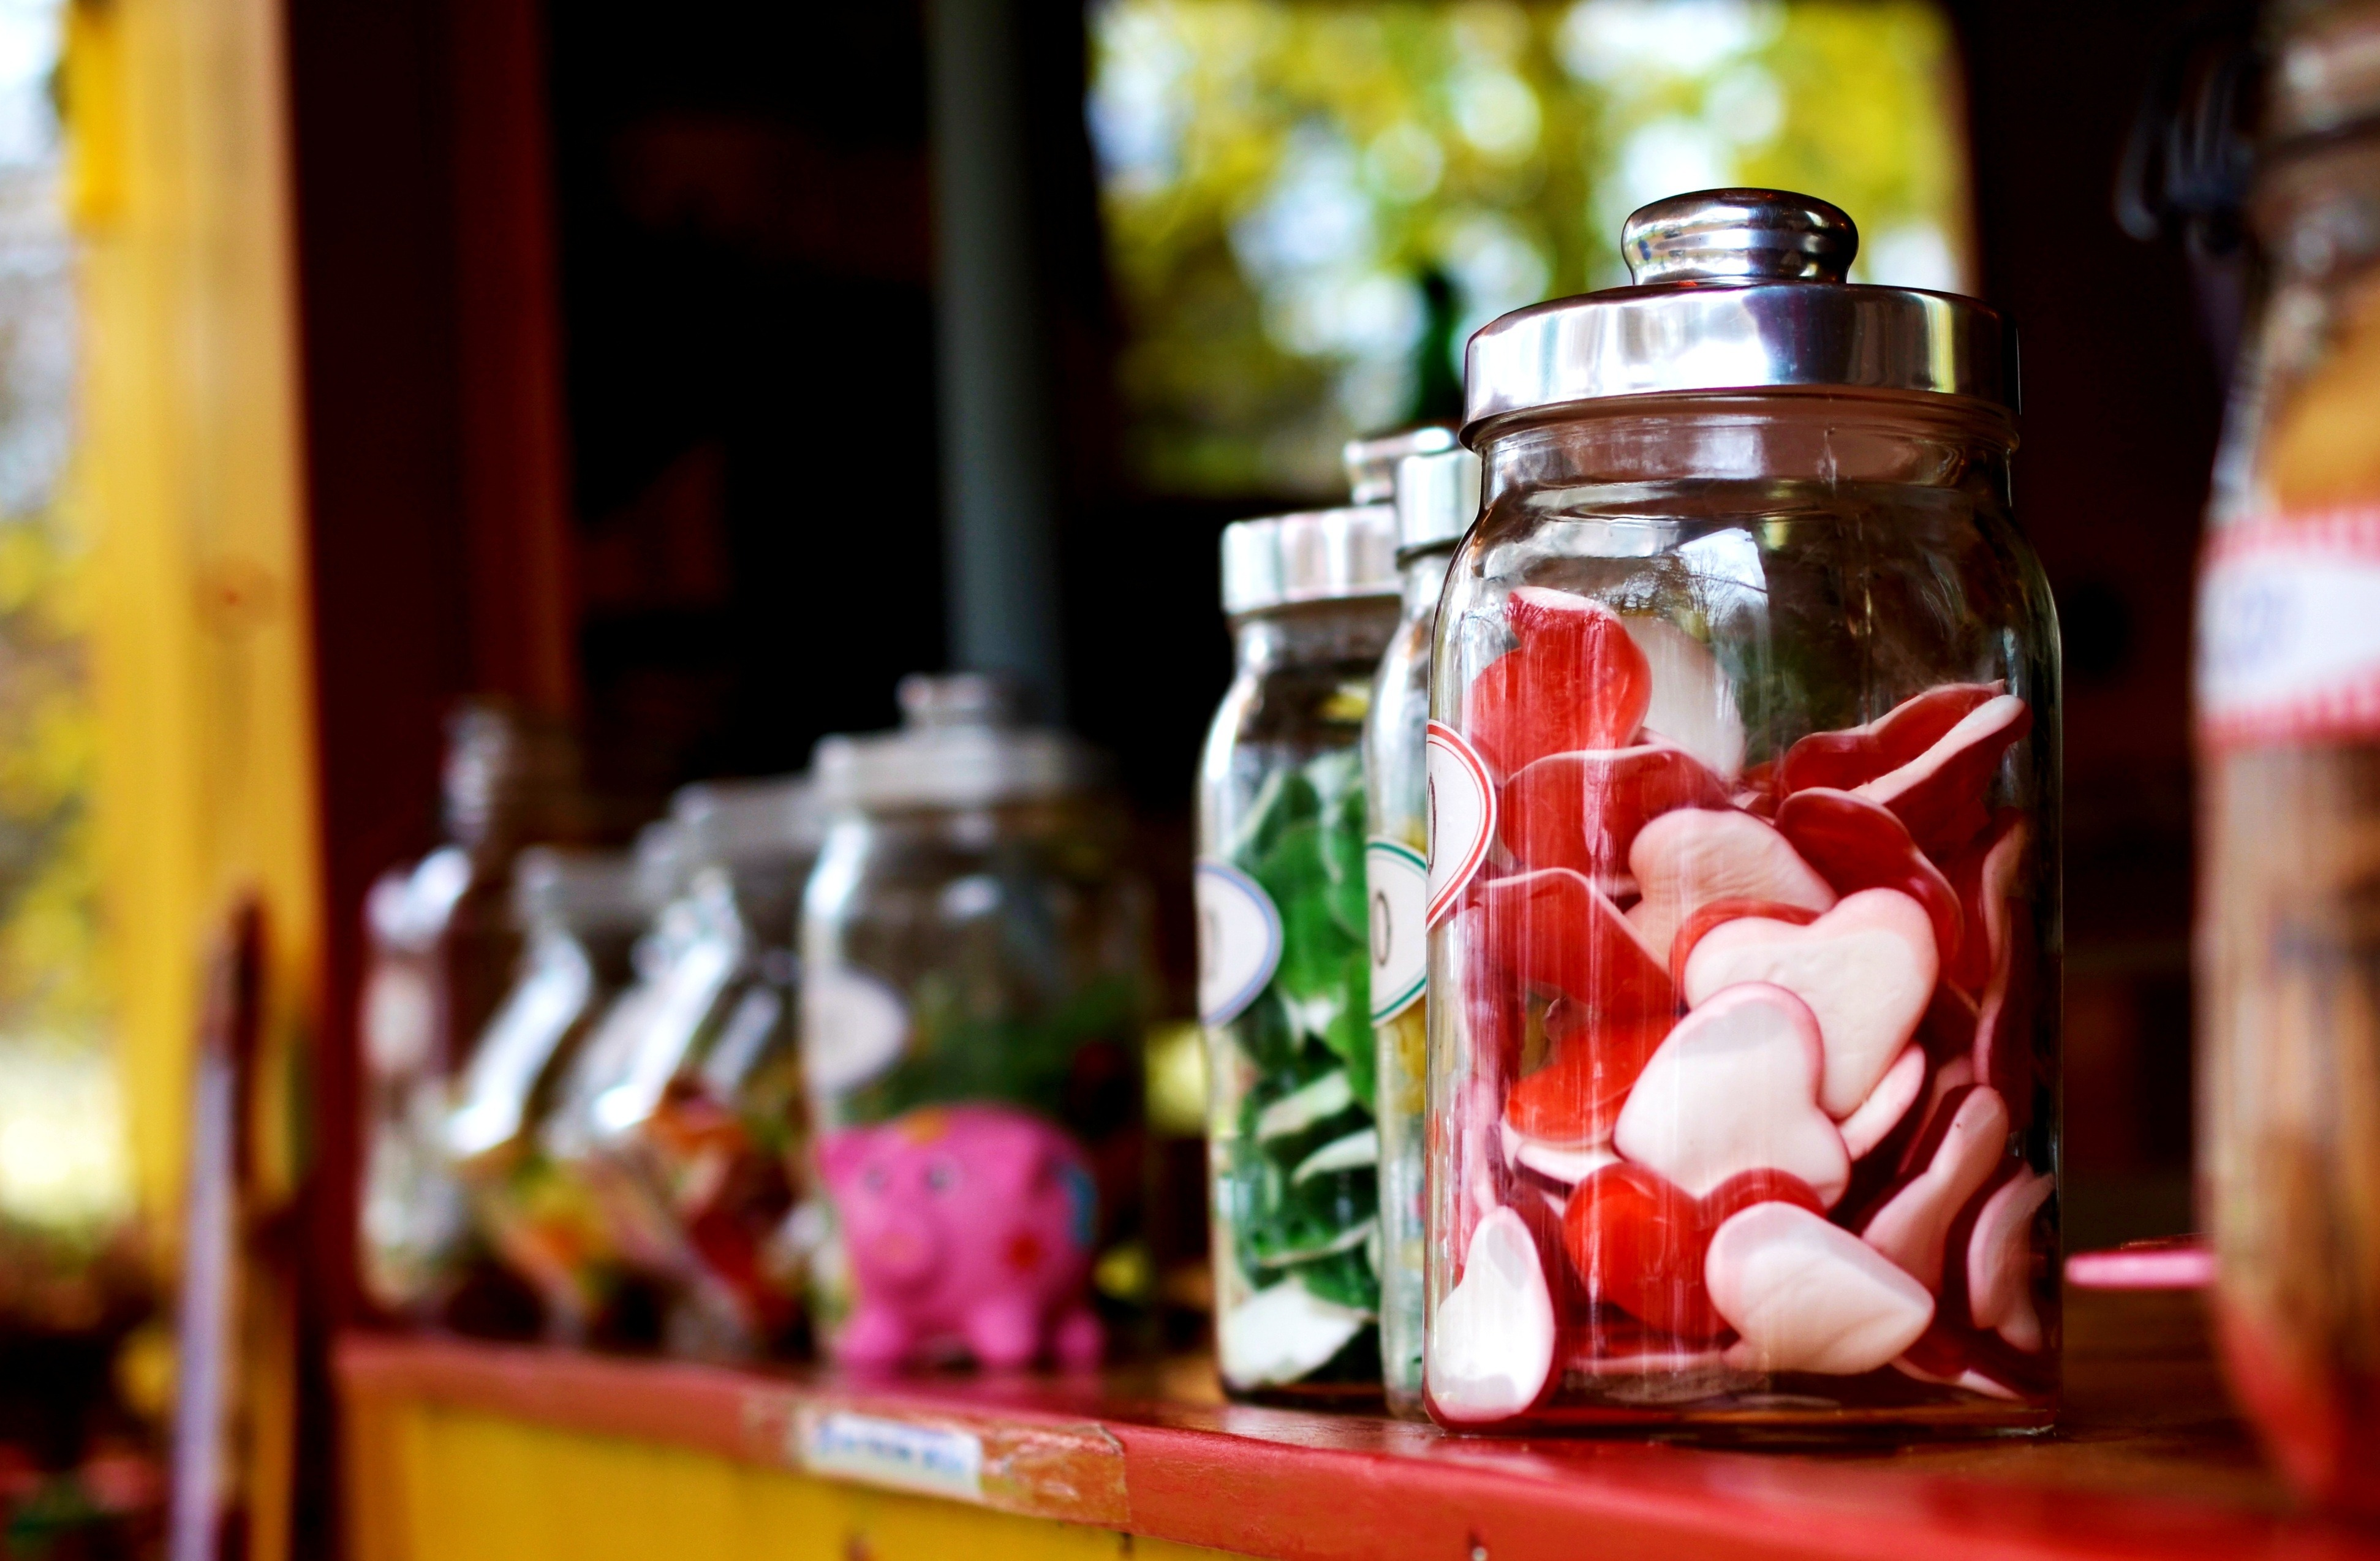 Improve Employee Productivity and Job Satisfaction with Office Lolly and Snack Jars